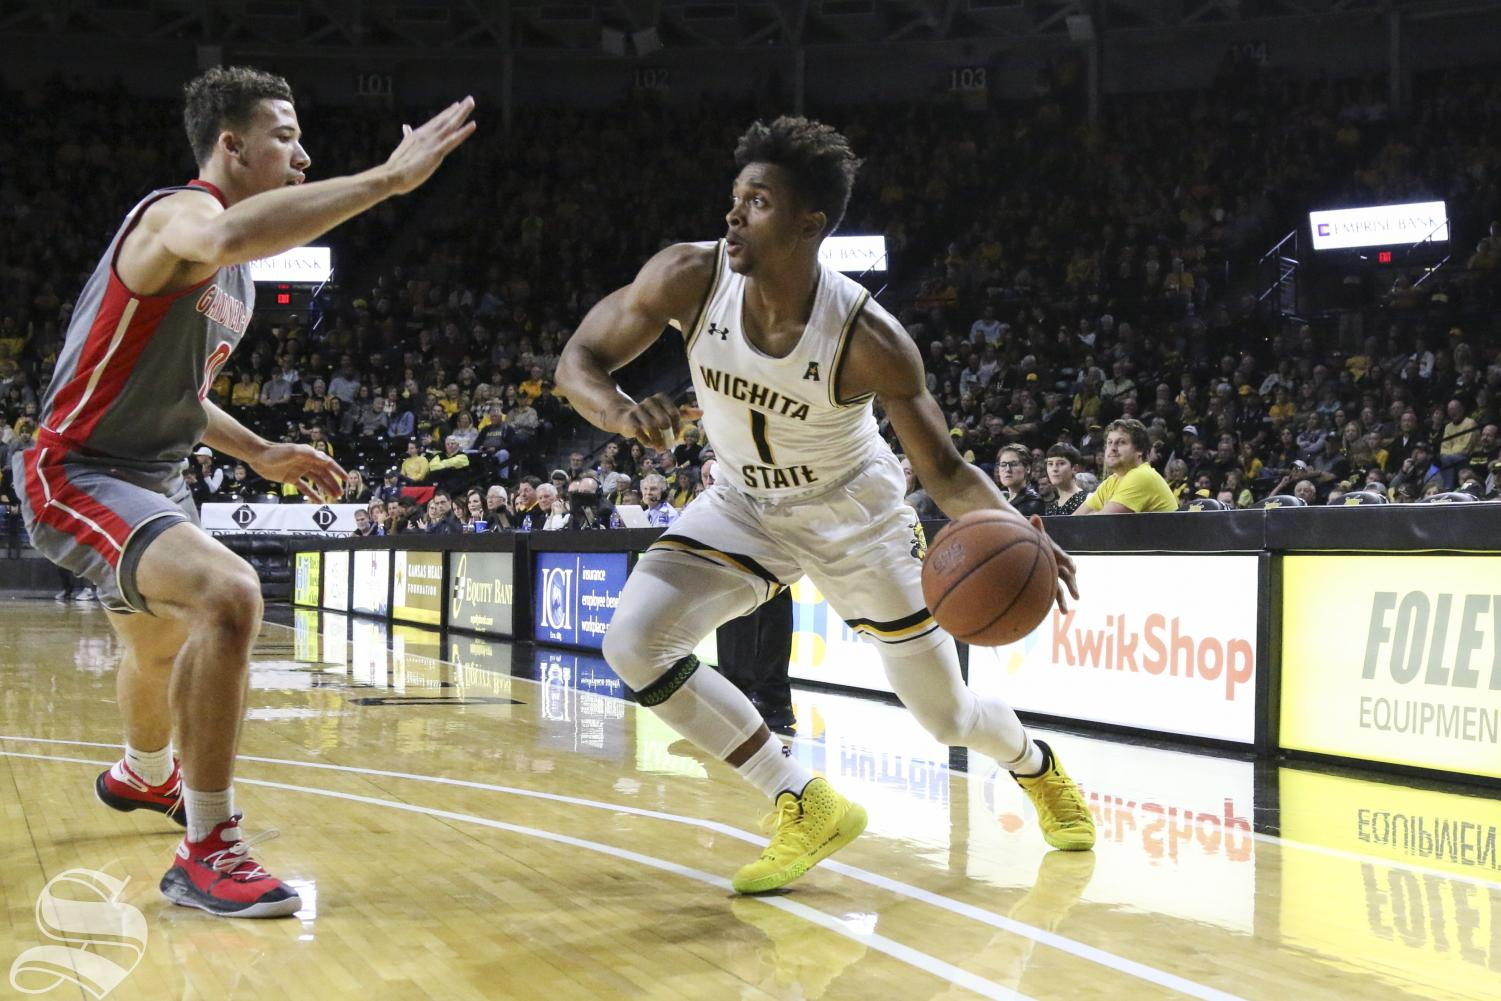 Wichita State freshman Tyson Etienne looks to drive the ball past Gardner-Webb's defense on Tuesday, Nov. 19, 2019, at Charles Koch Arena.